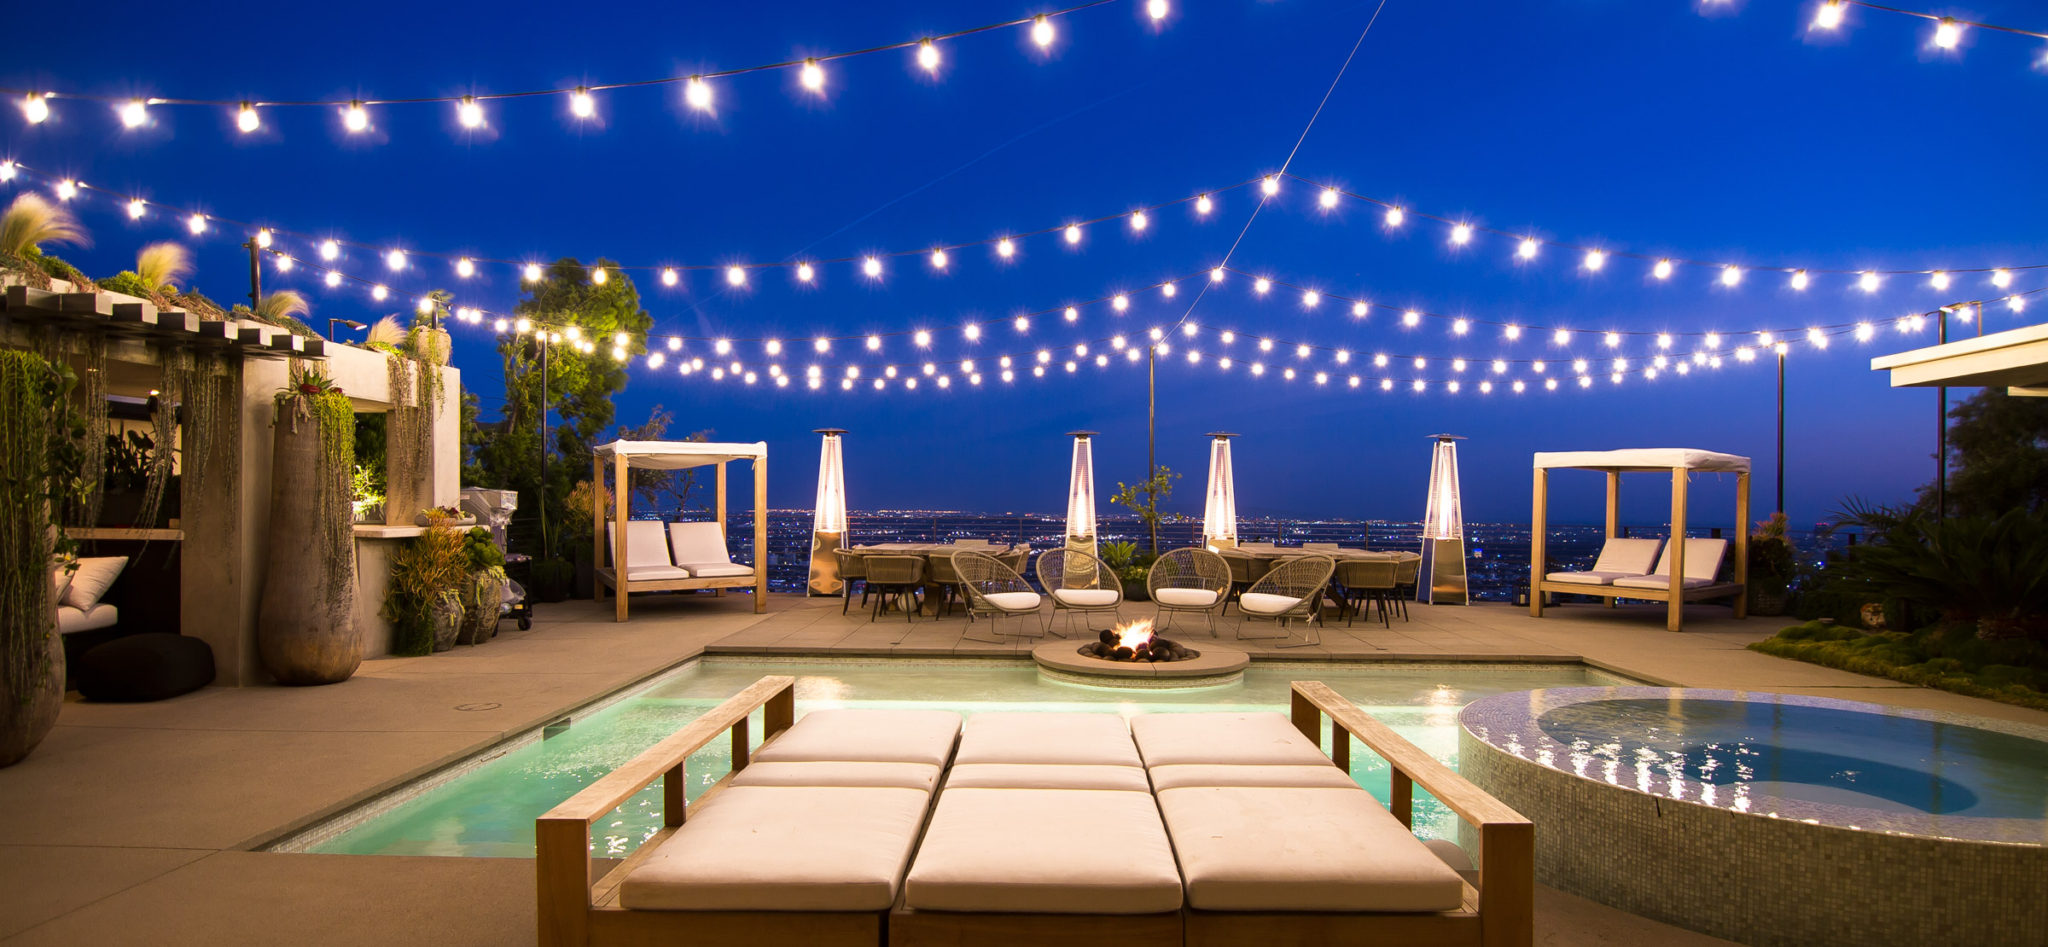 Year-Round Lighting Installation - Overhead Pool Lighting